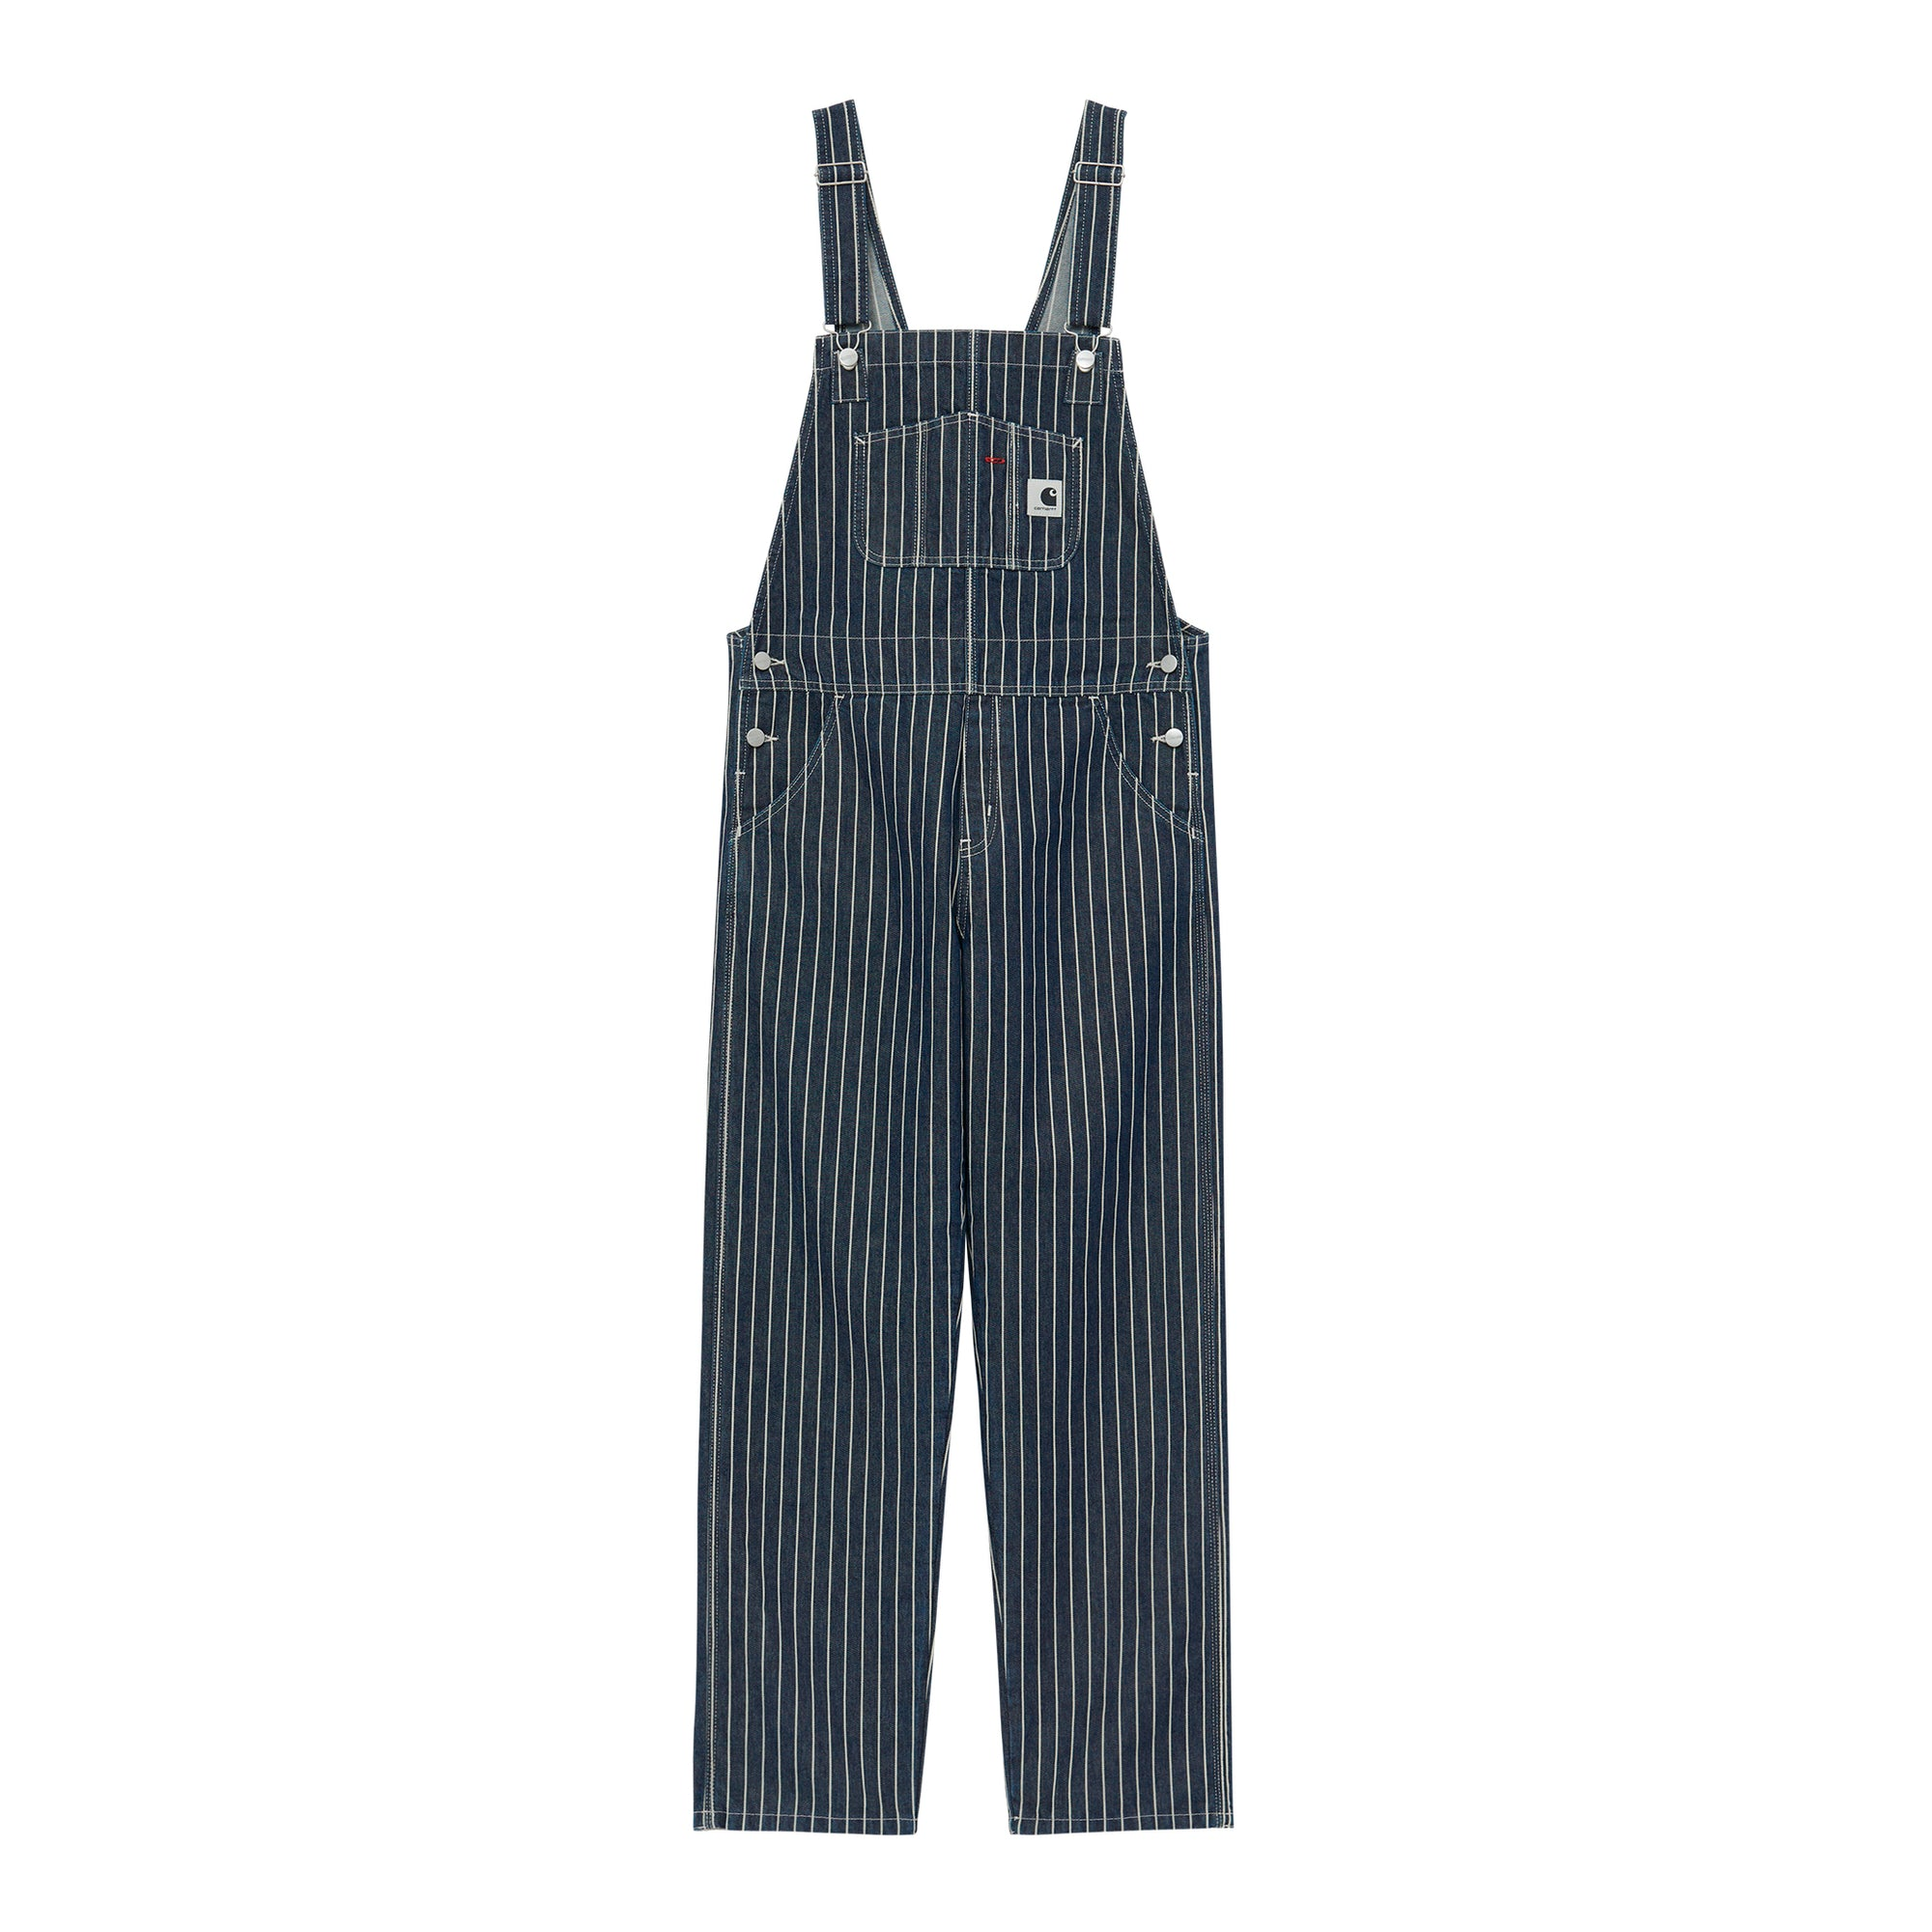 Carhartt WIP Womens Trade Overall: Hickory Stripe: Dark Navy / Wax - The Union Project